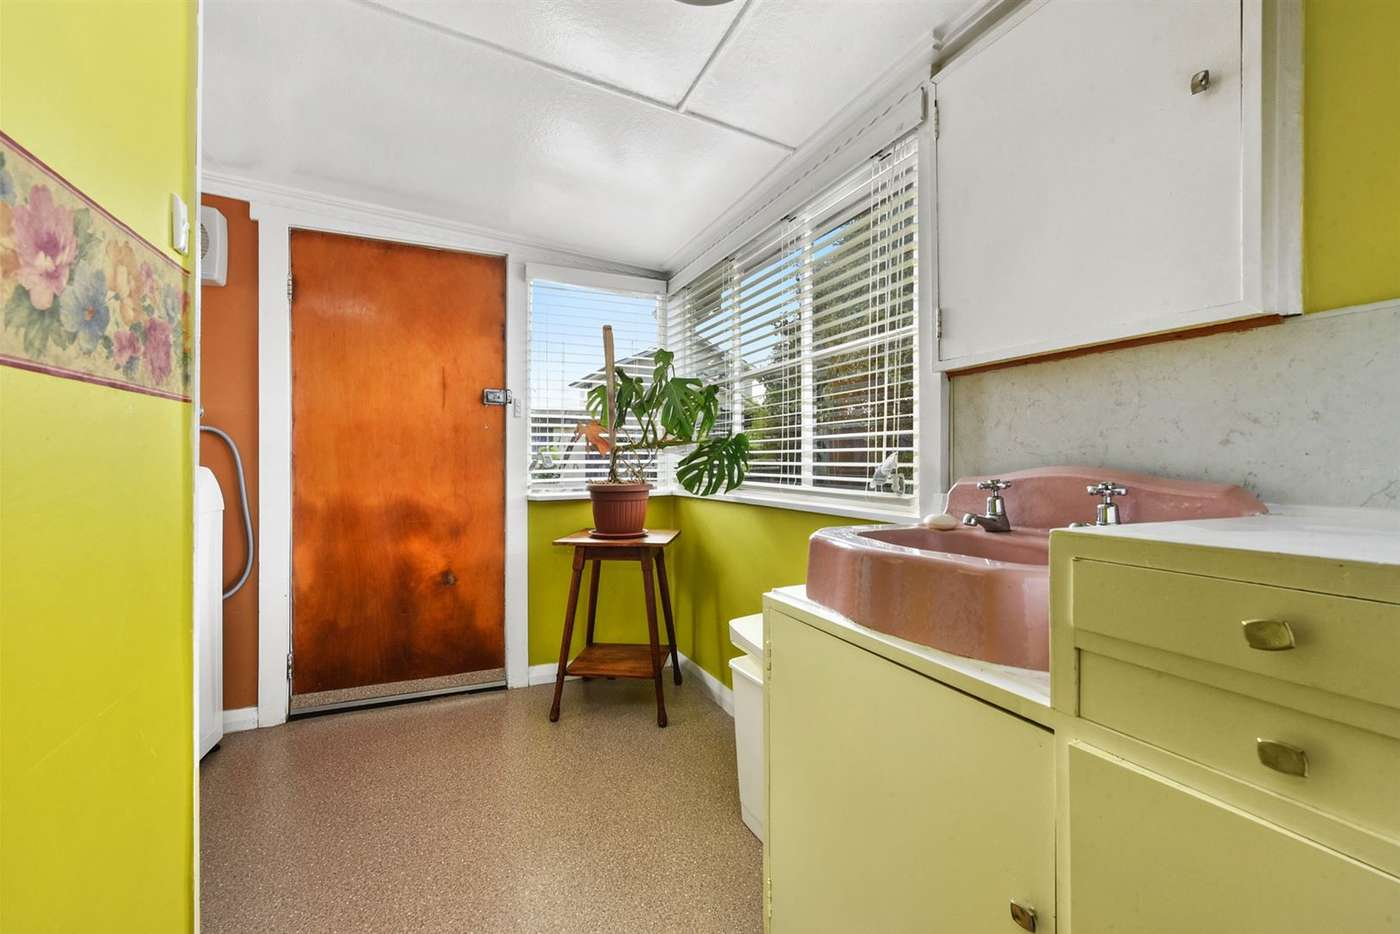 Sixth view of Homely flat listing, 1/26 Jellico Street, Mowbray TAS 7248